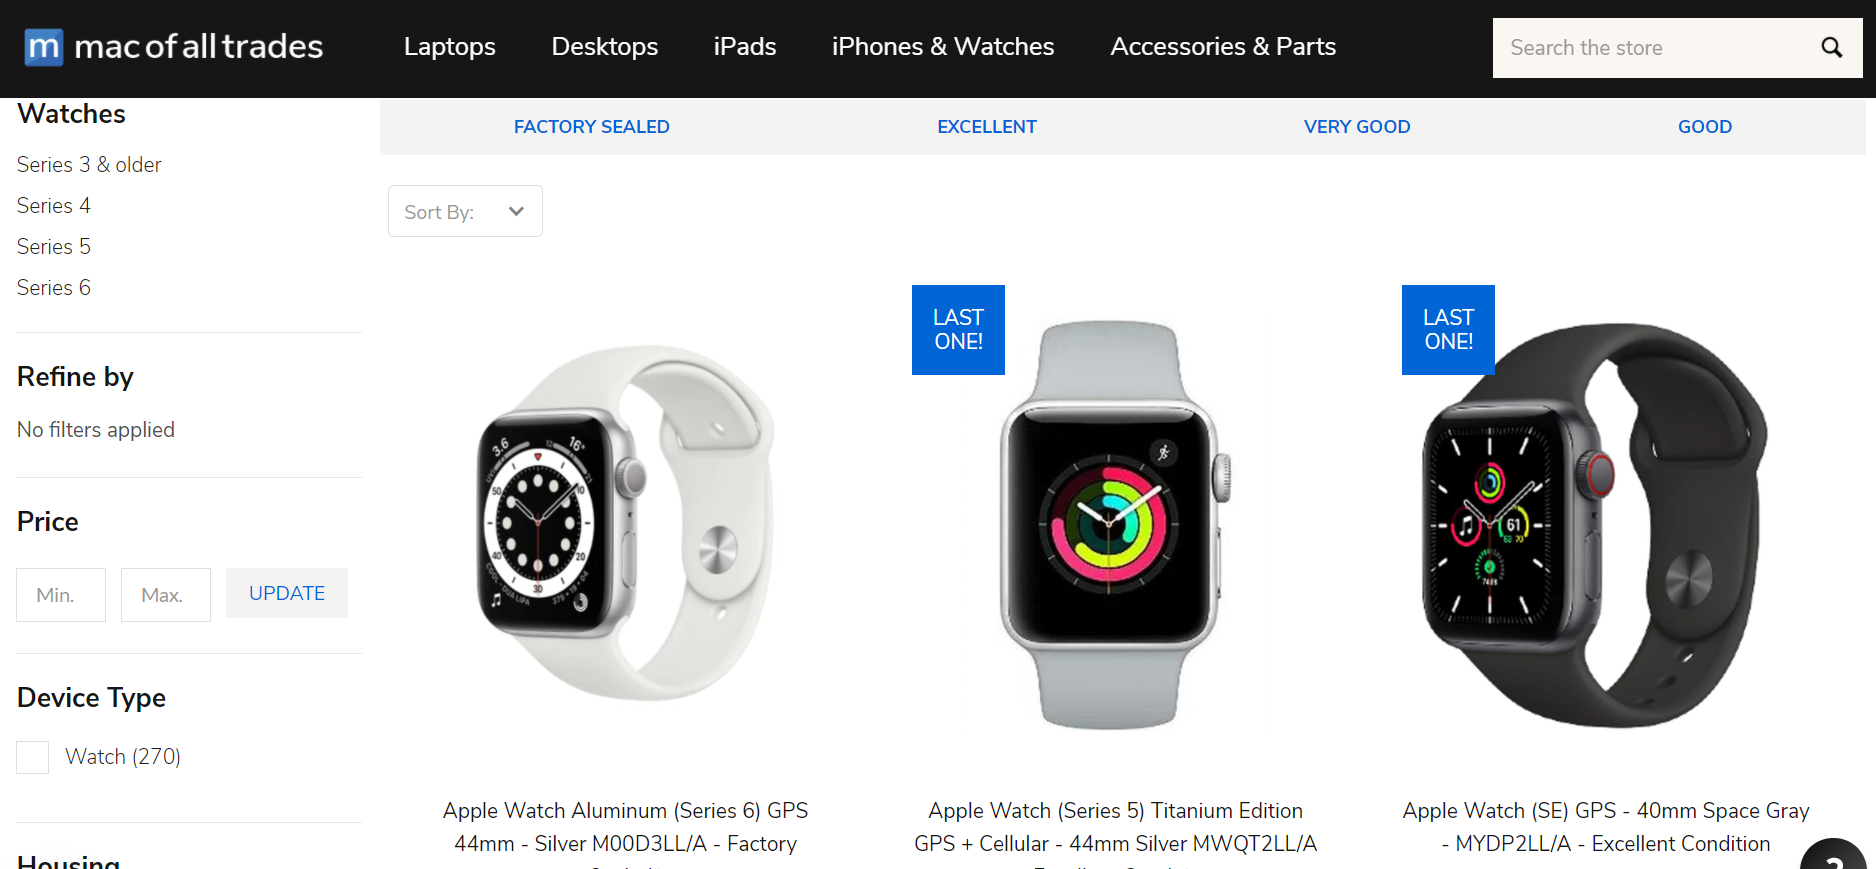 Screenshot of Mac of all trades apple watche series 3, 4, 5 and refurbished apple watch series 6